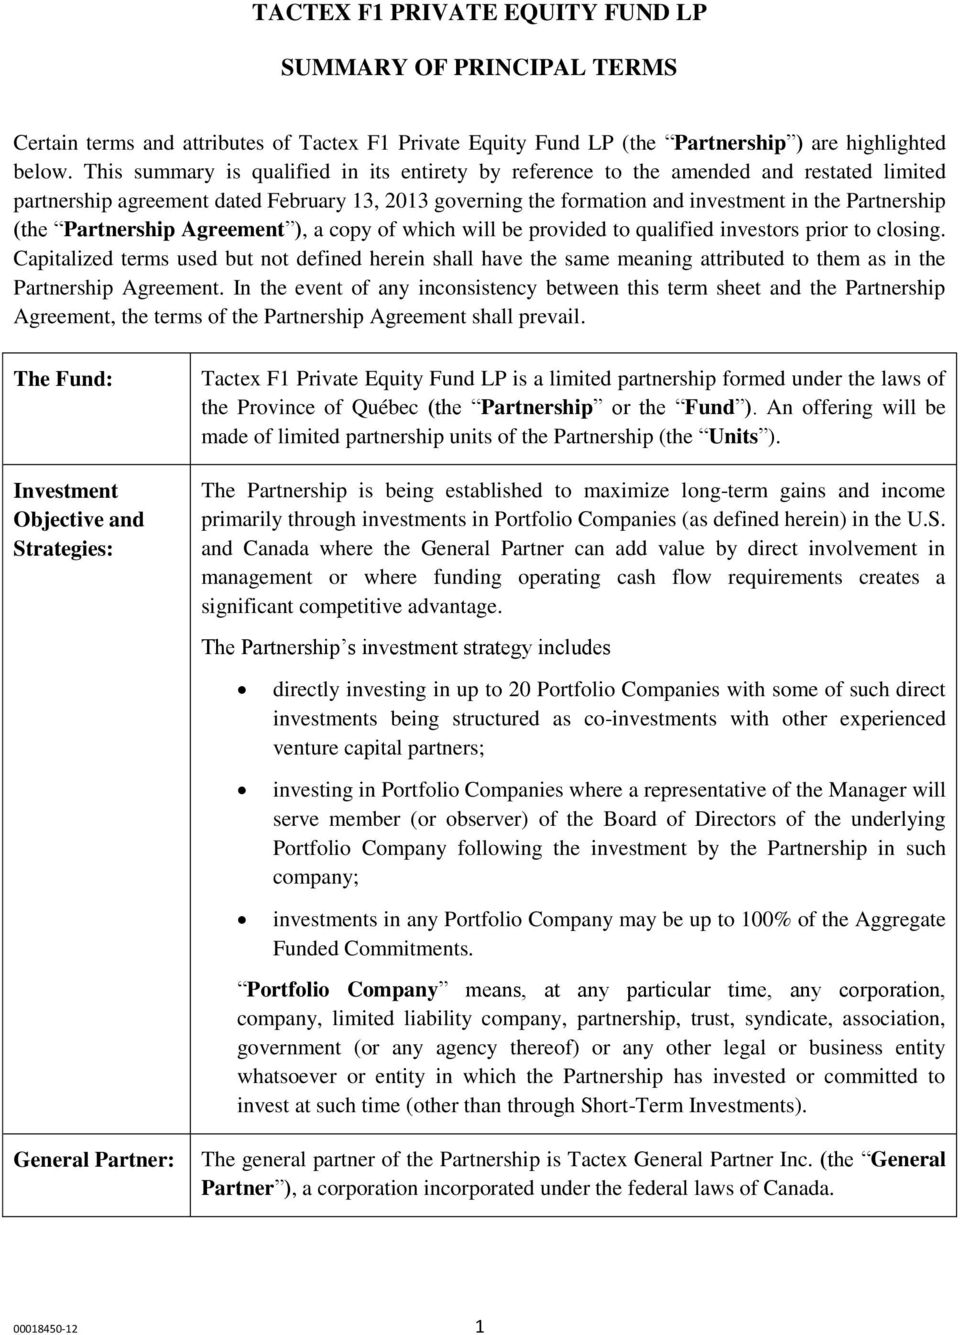 Partnership Agreement ), a copy of which will be provided to qualified investors prior to closing.